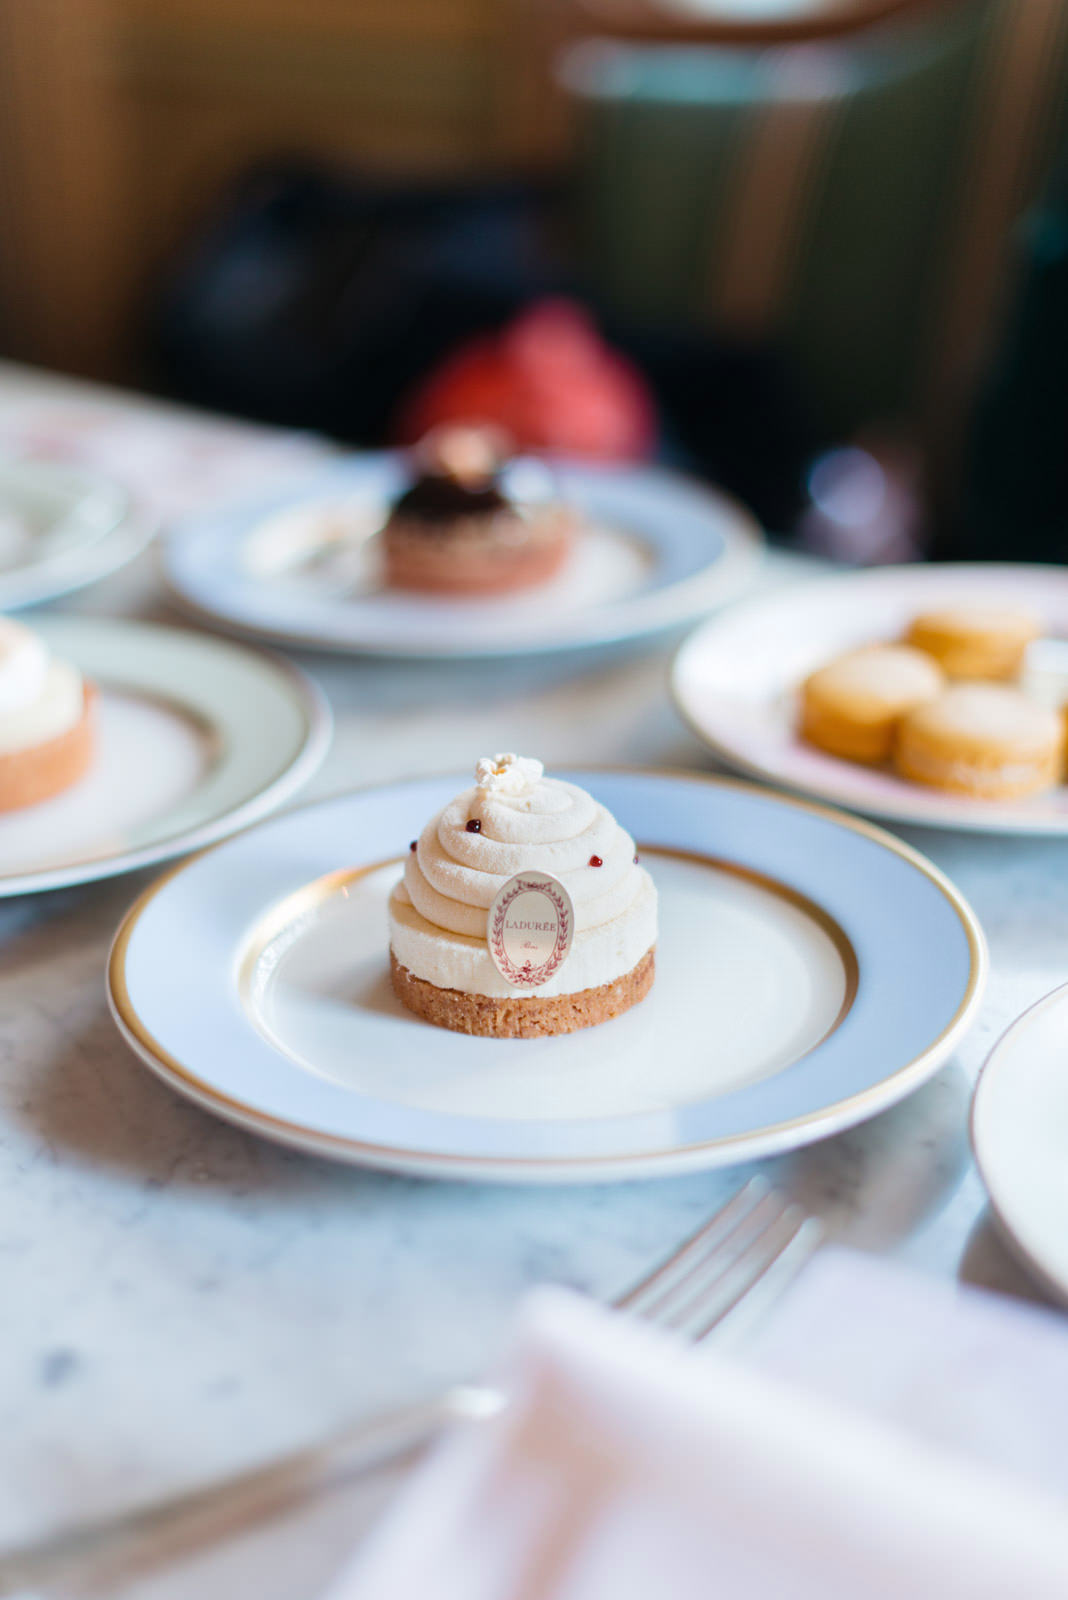 Blog-Mode-And-The-City-Lifestyle-Cinq-petites-Choses-192-laduree